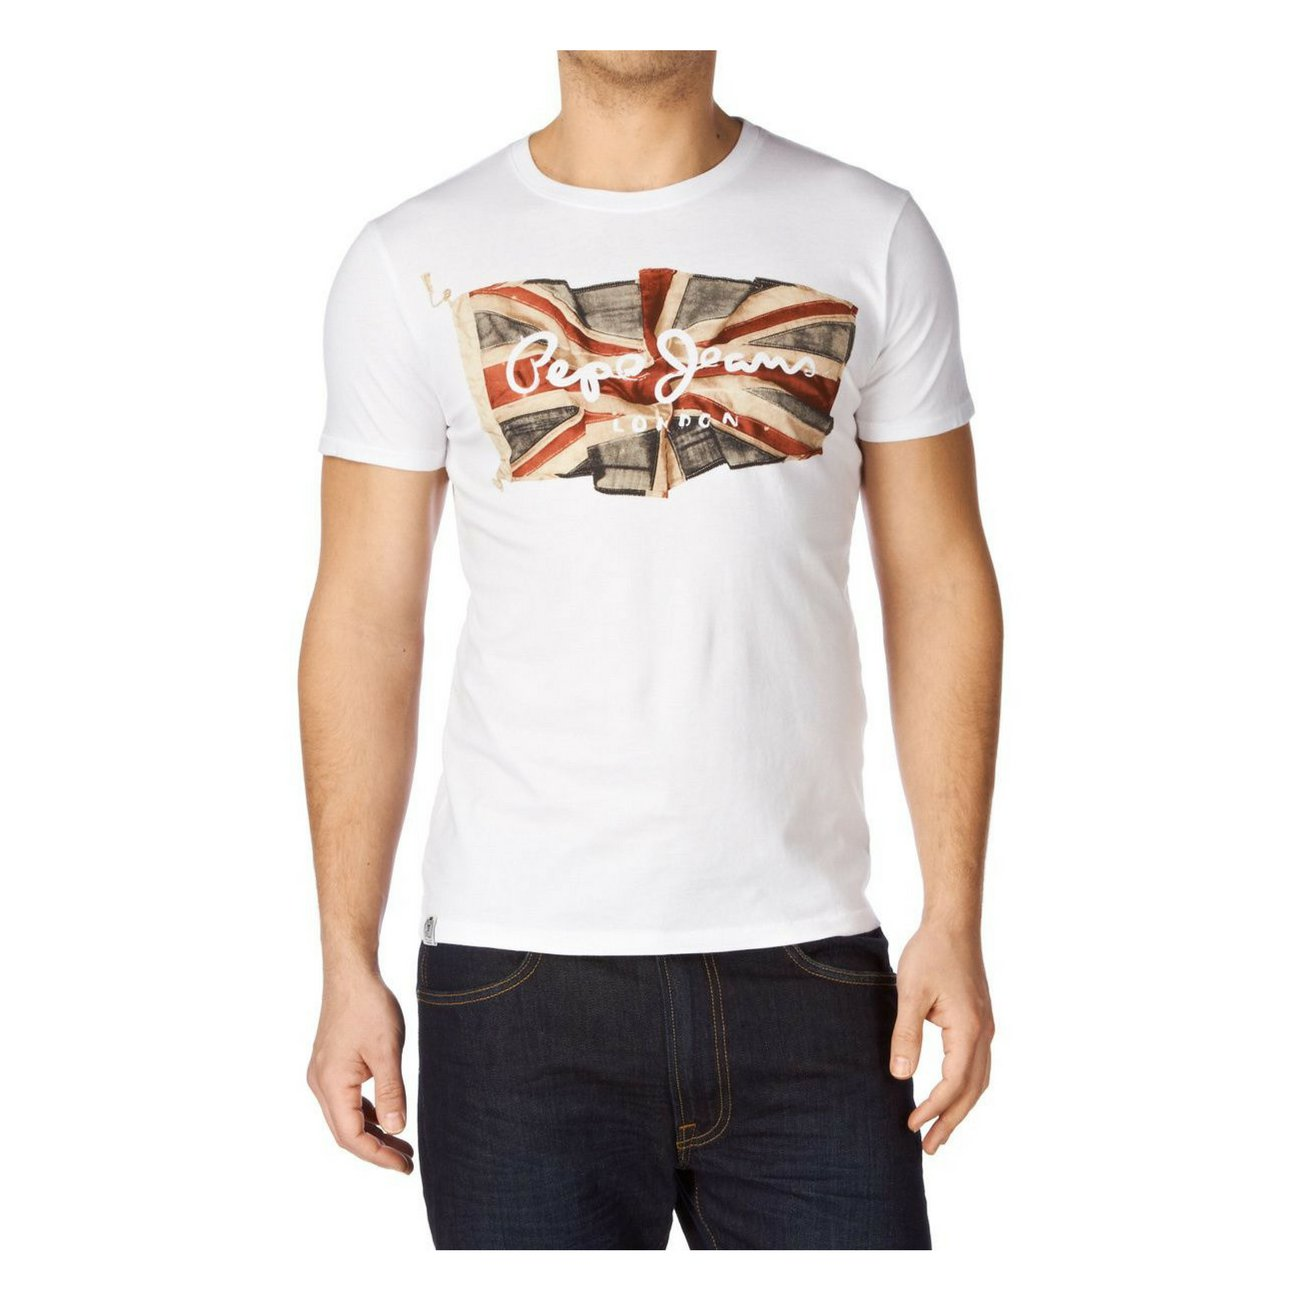 Pepe Jeans Flag Logo Men's T-Shirt, White, Medium